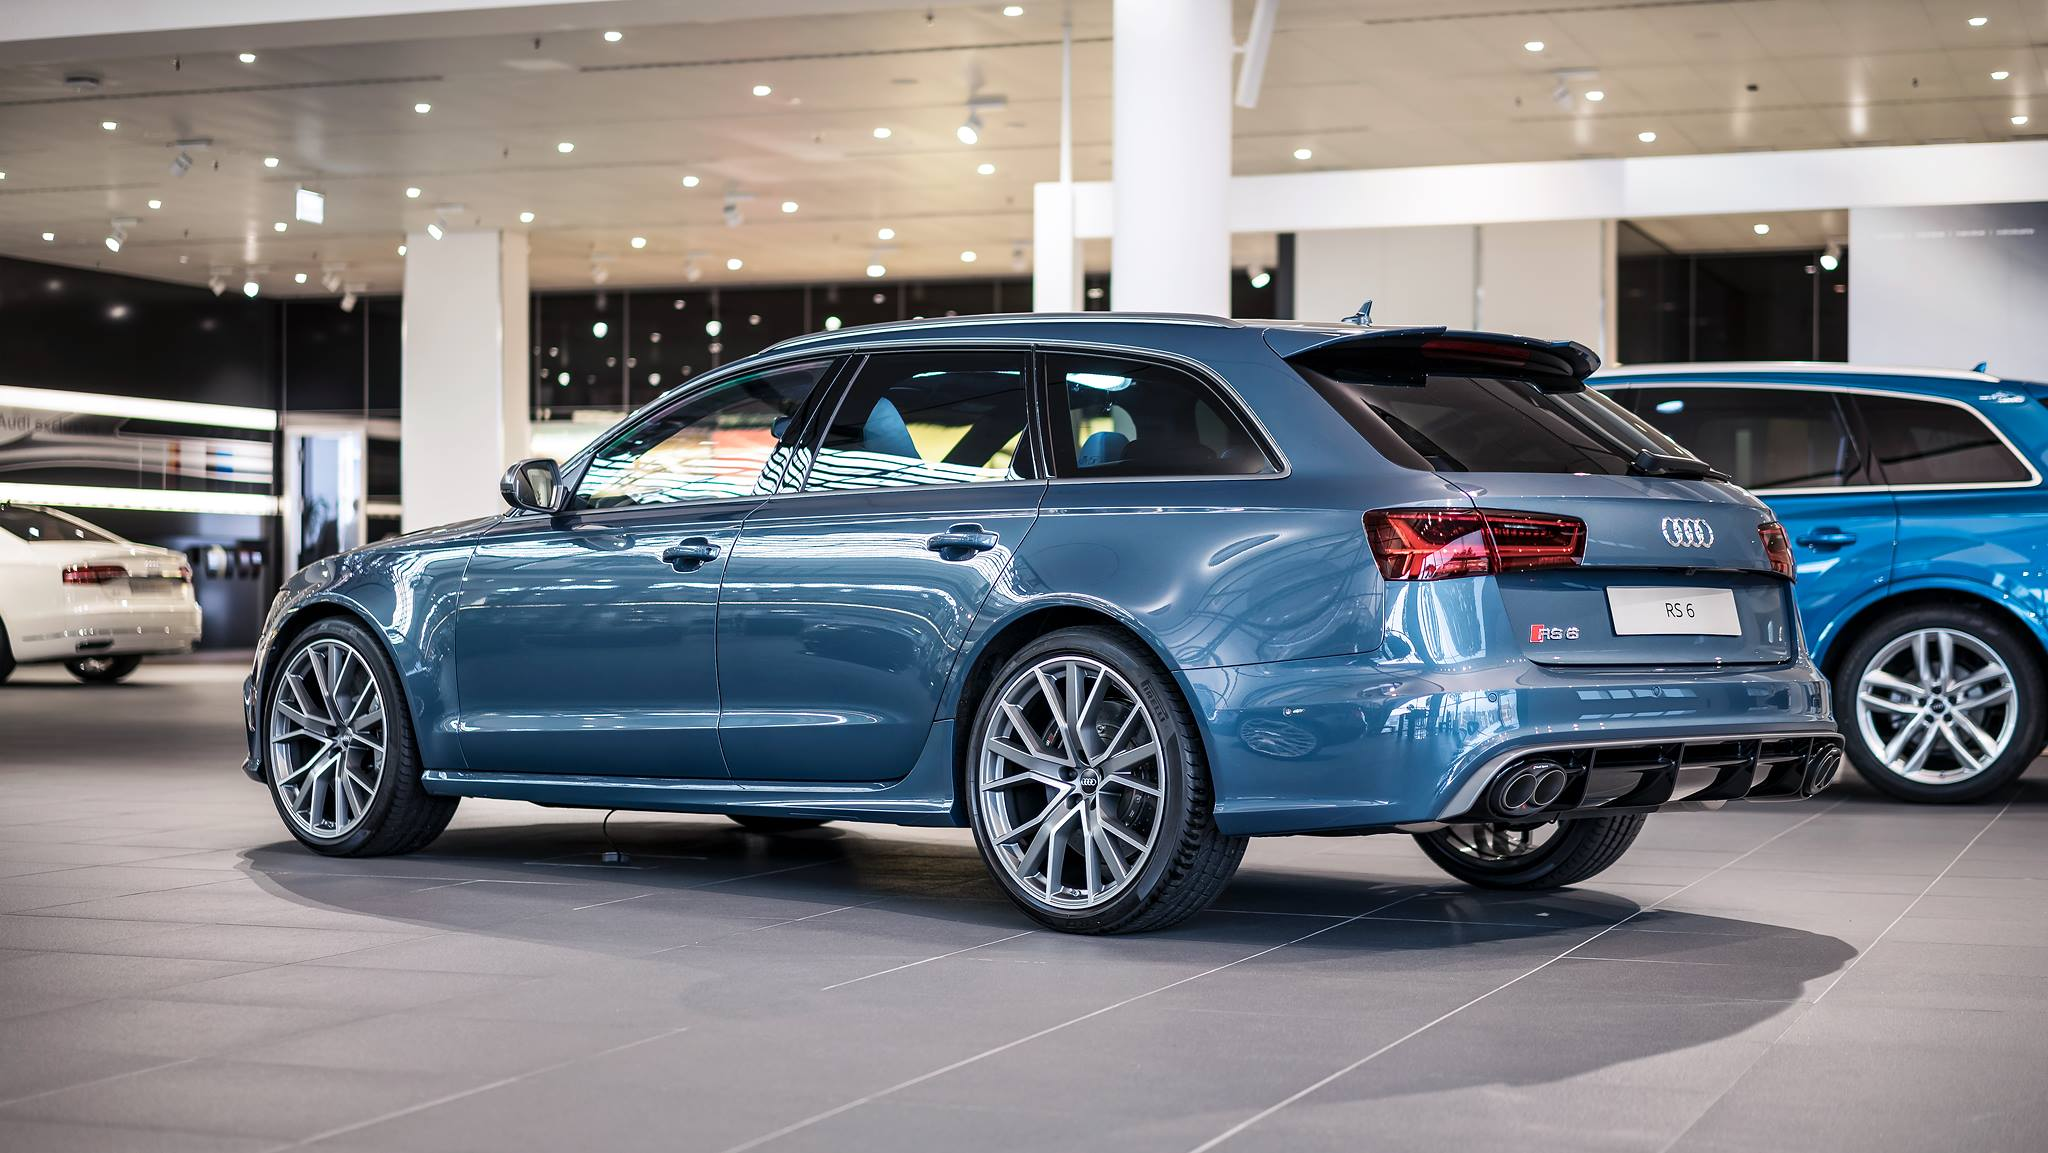 Polar Blue Metallic Audi Rs6 Performance By Audi Exclusive Gtspirit